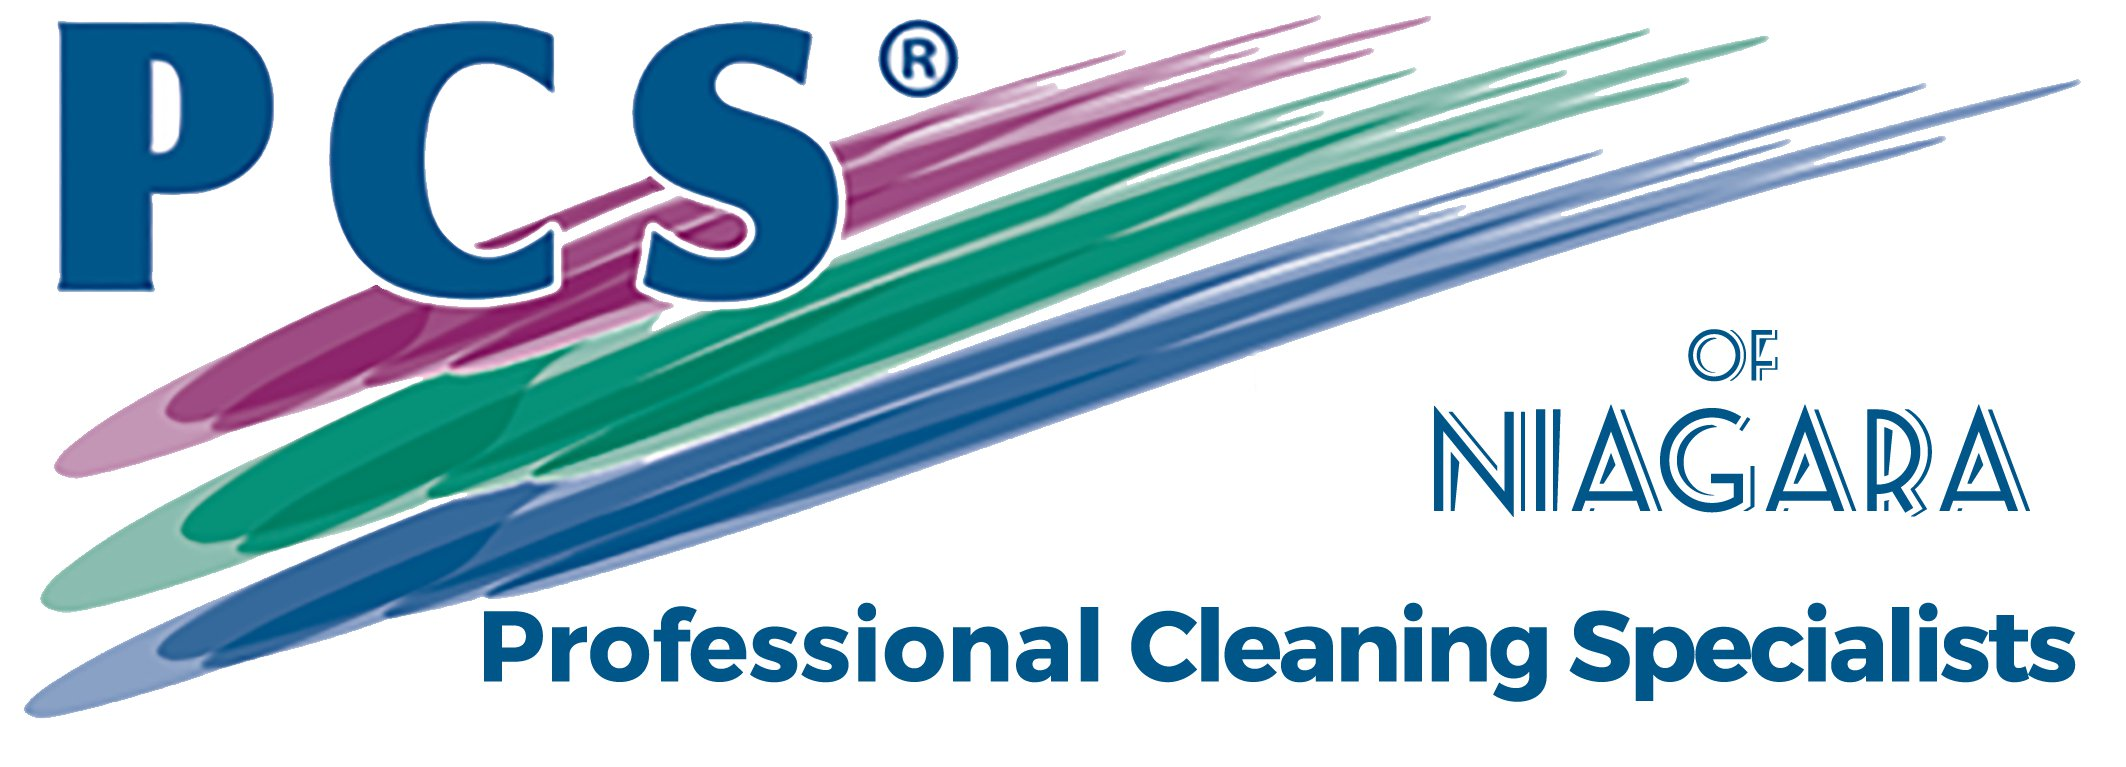 PCS of Niagara - Professional Cleaning Specialists